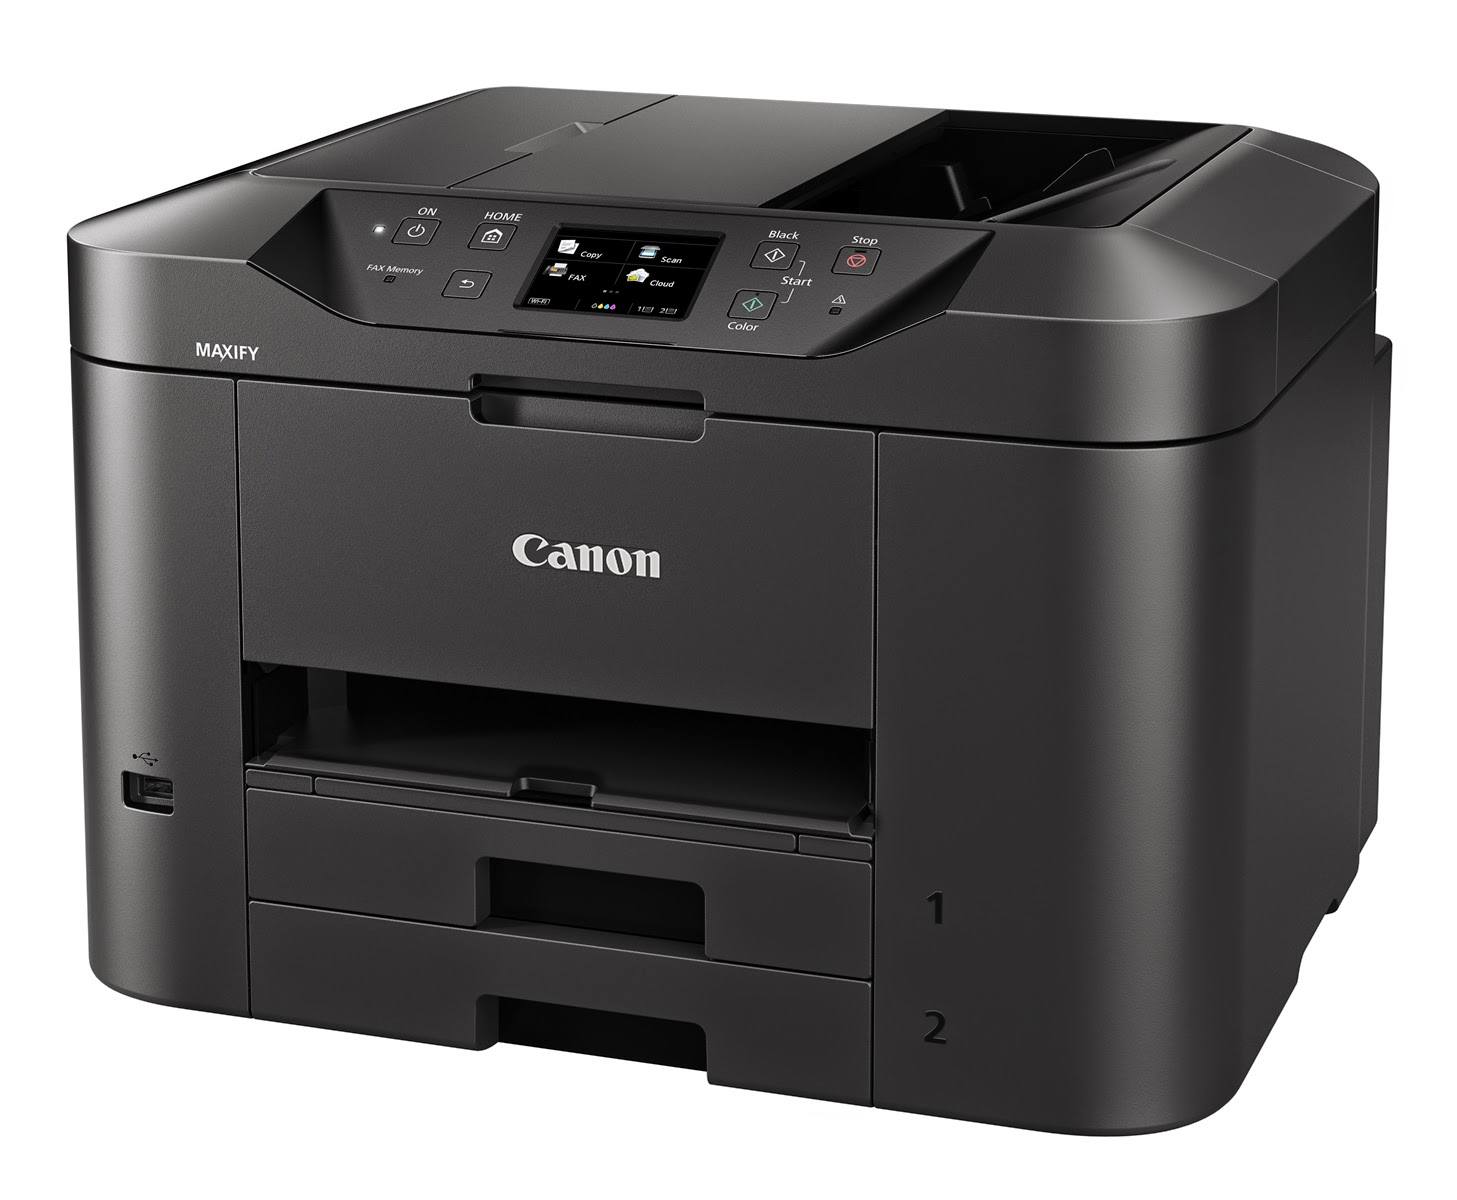 Canon Maxify Mb2040 Printer Drivers